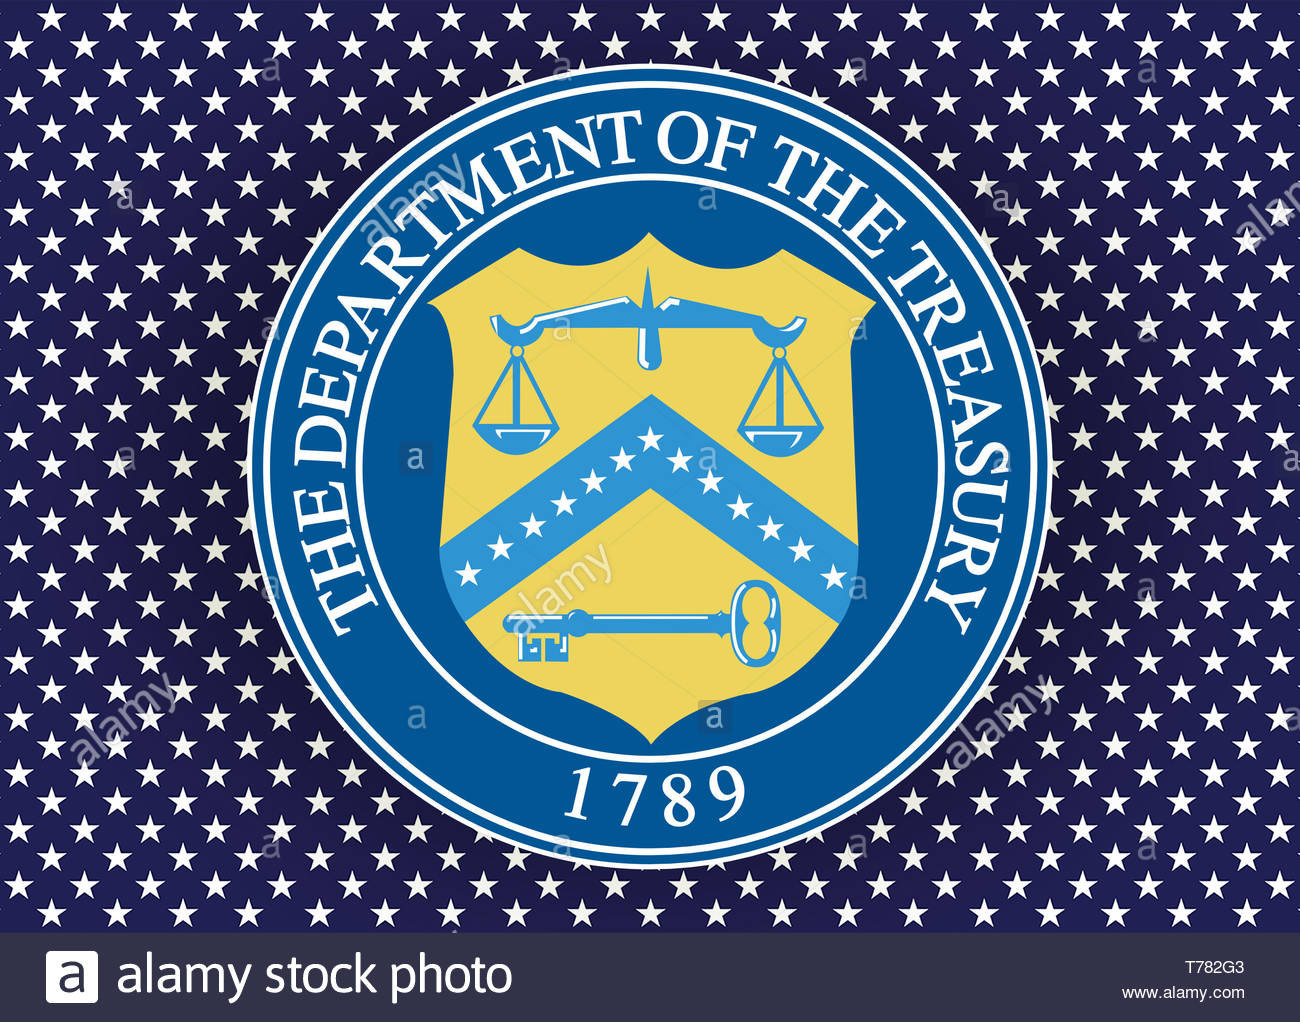 United States Department Of The Treasury Stock Photos & United